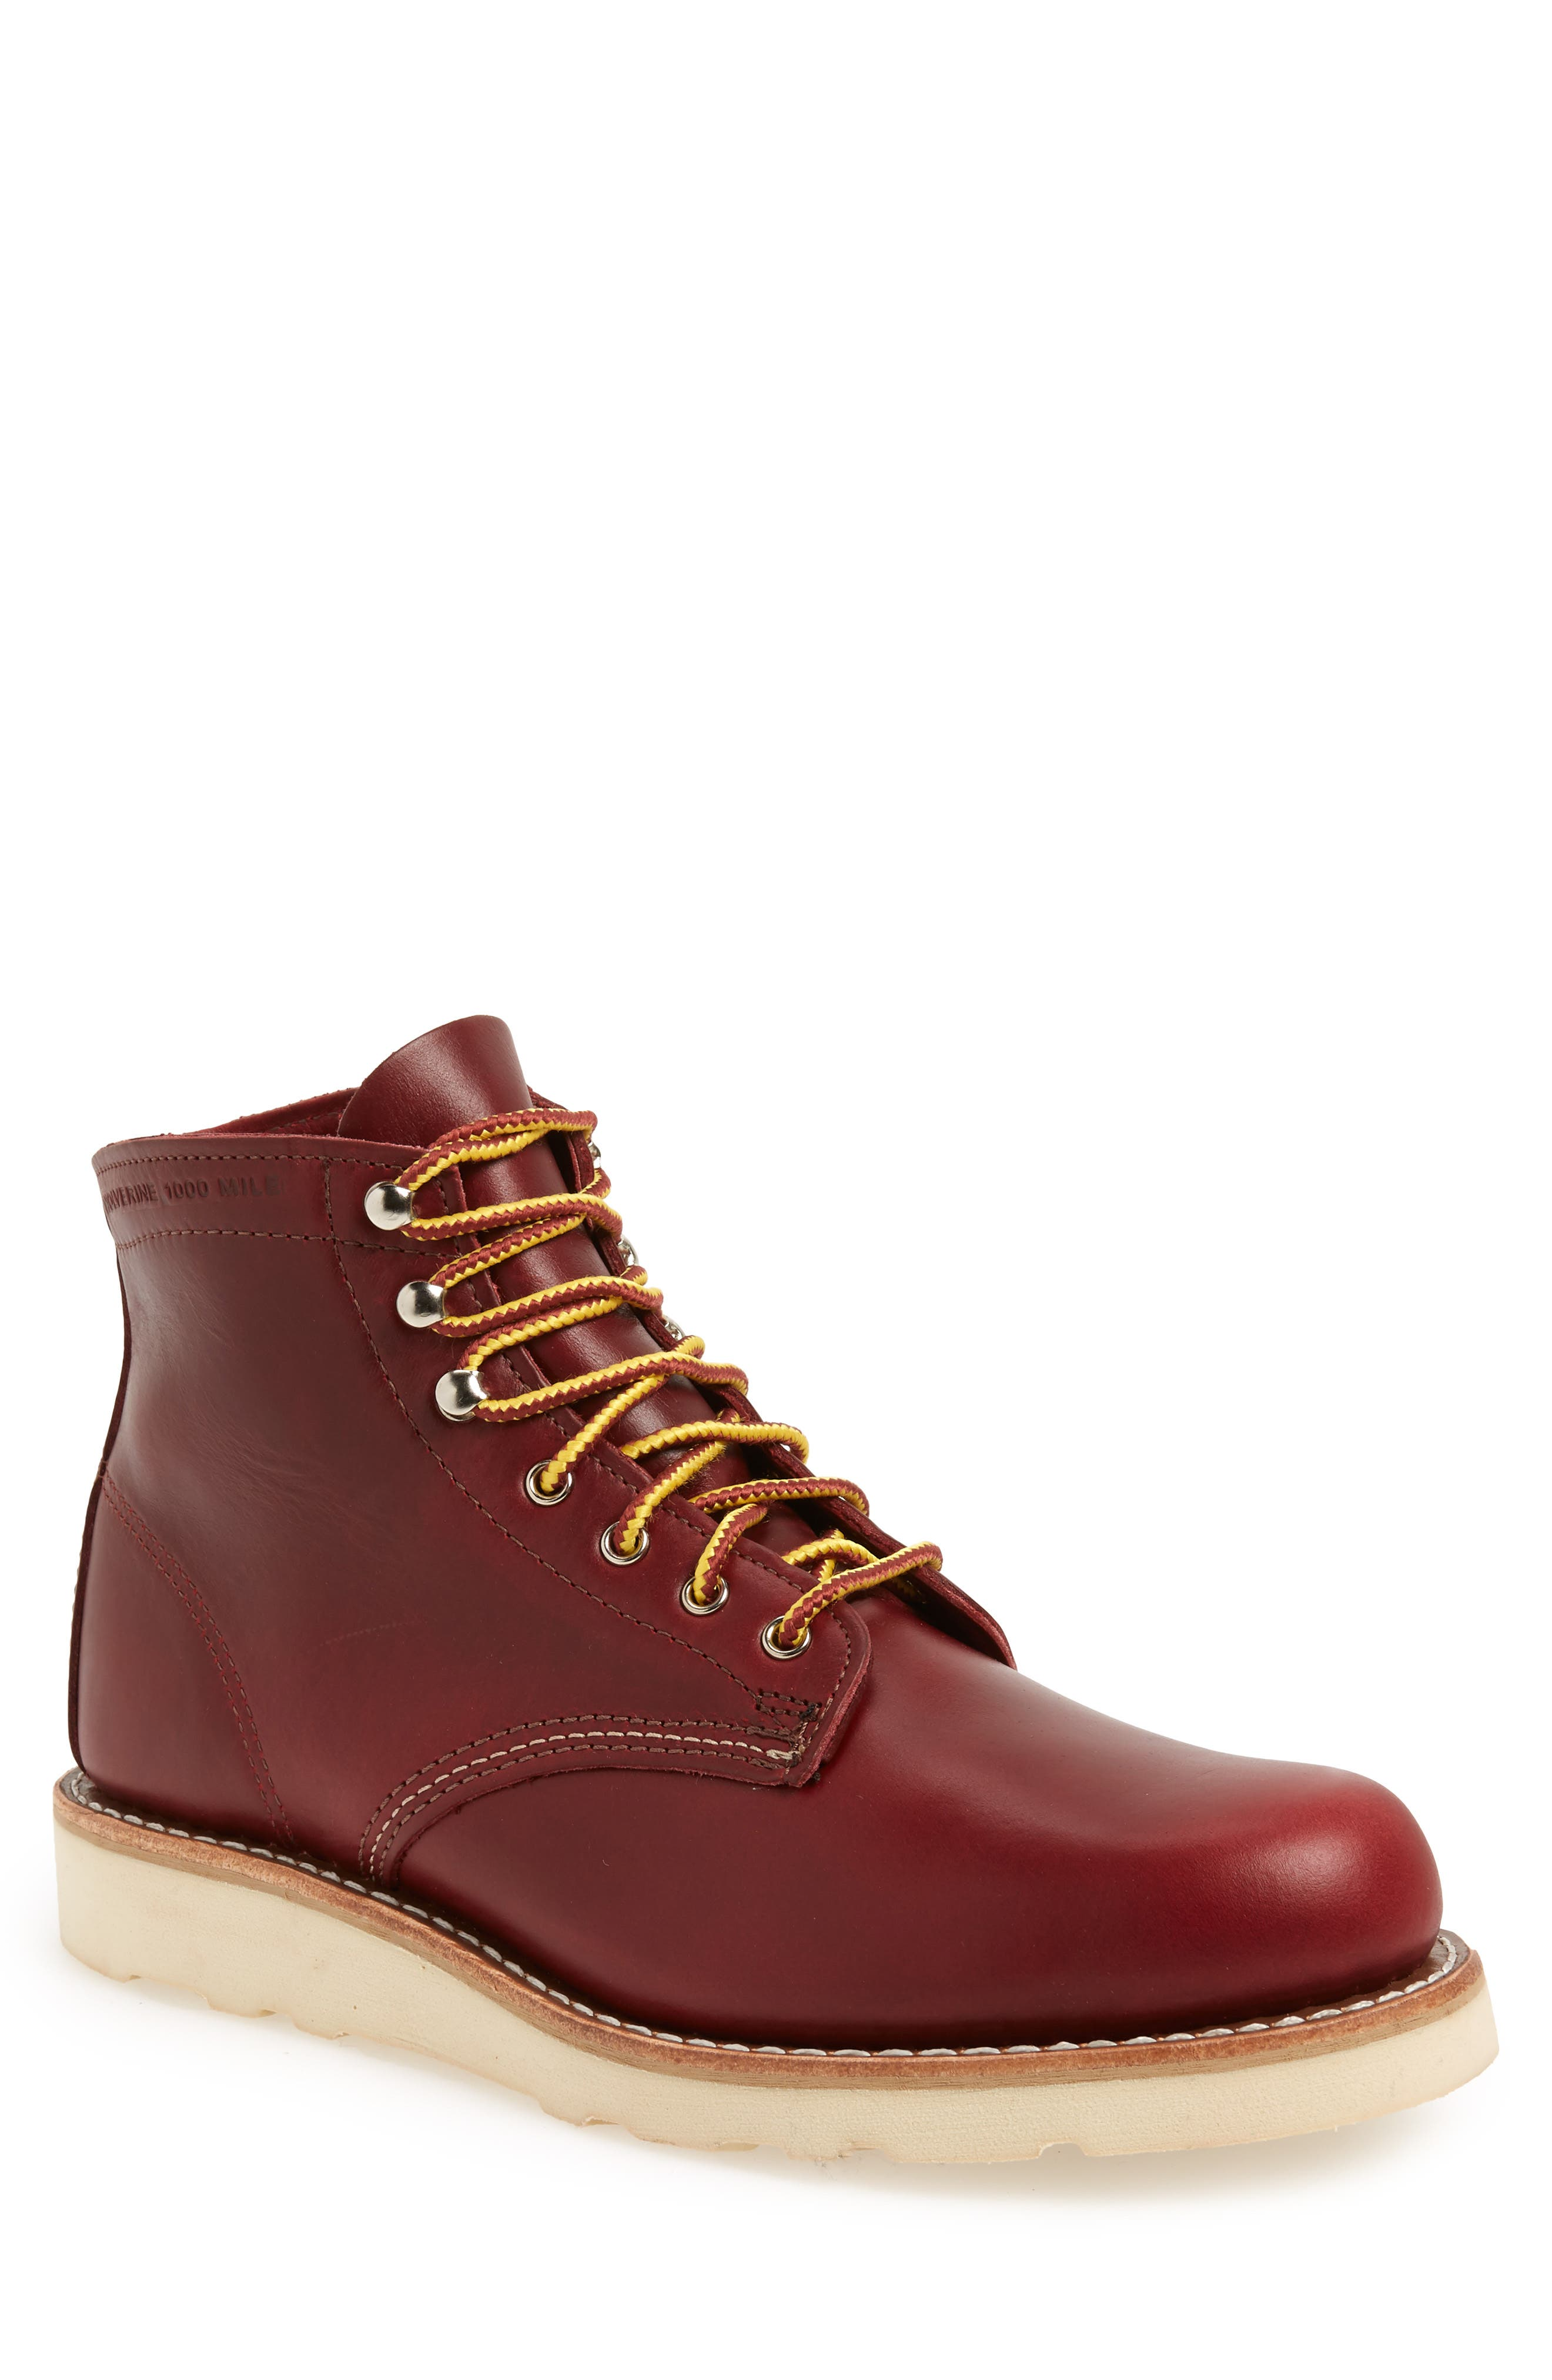 1000 Mile Wedge Boot,                             Main thumbnail 1, color,                             RED